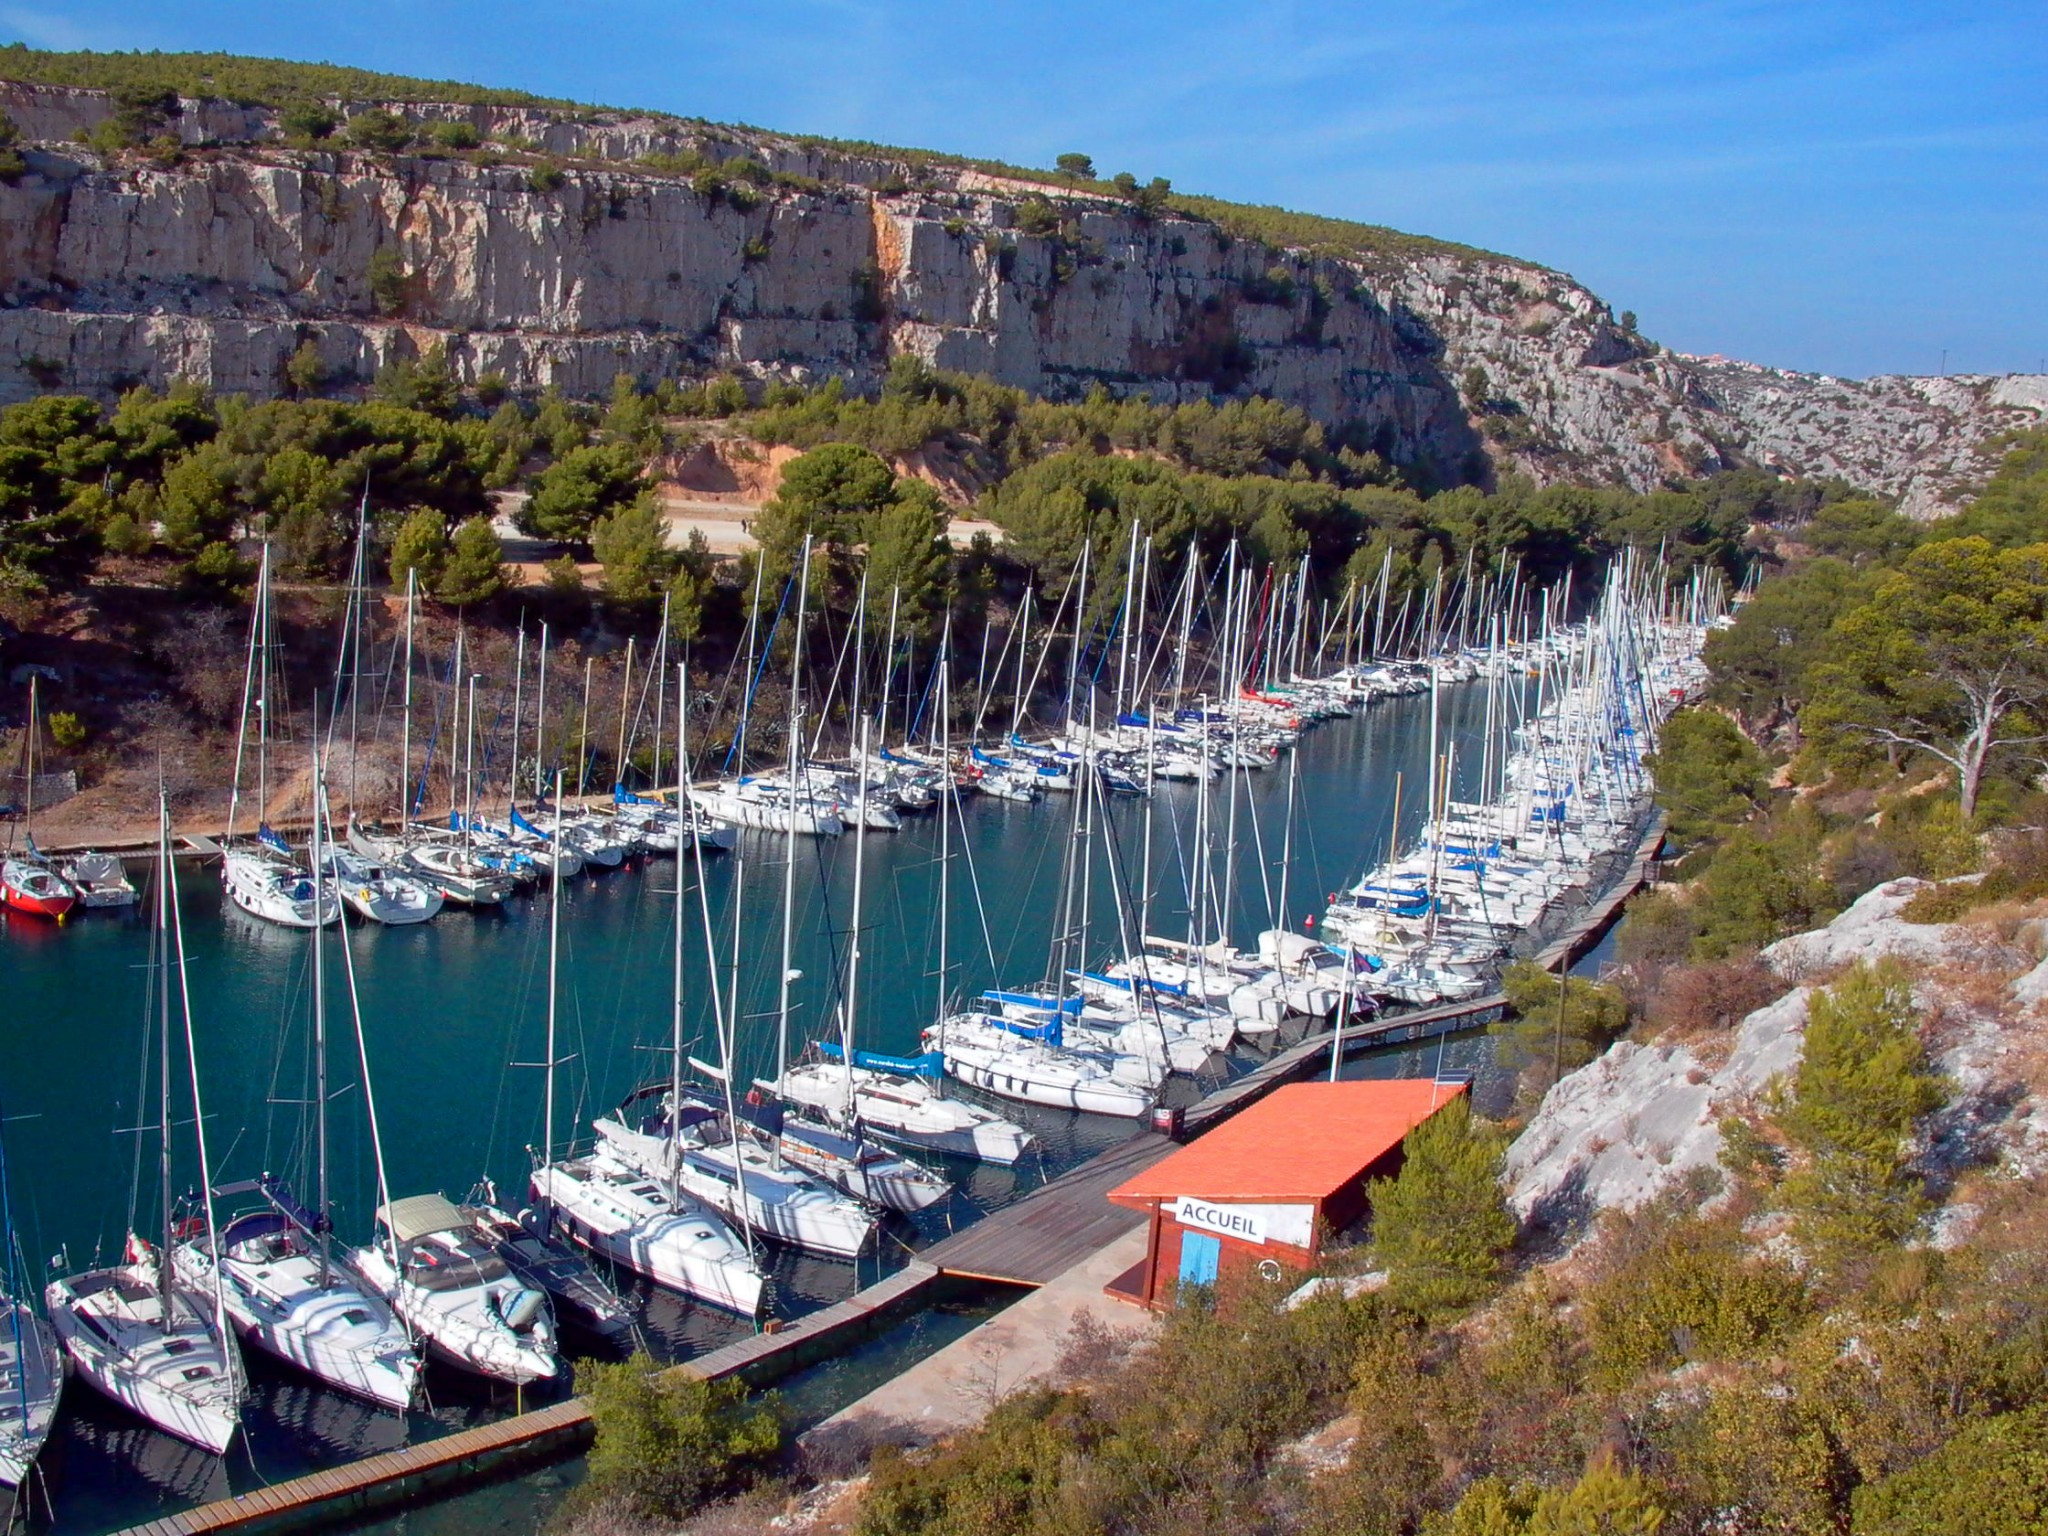 Location Canoe Cassis Calanques Of Cassis Provence French Moments